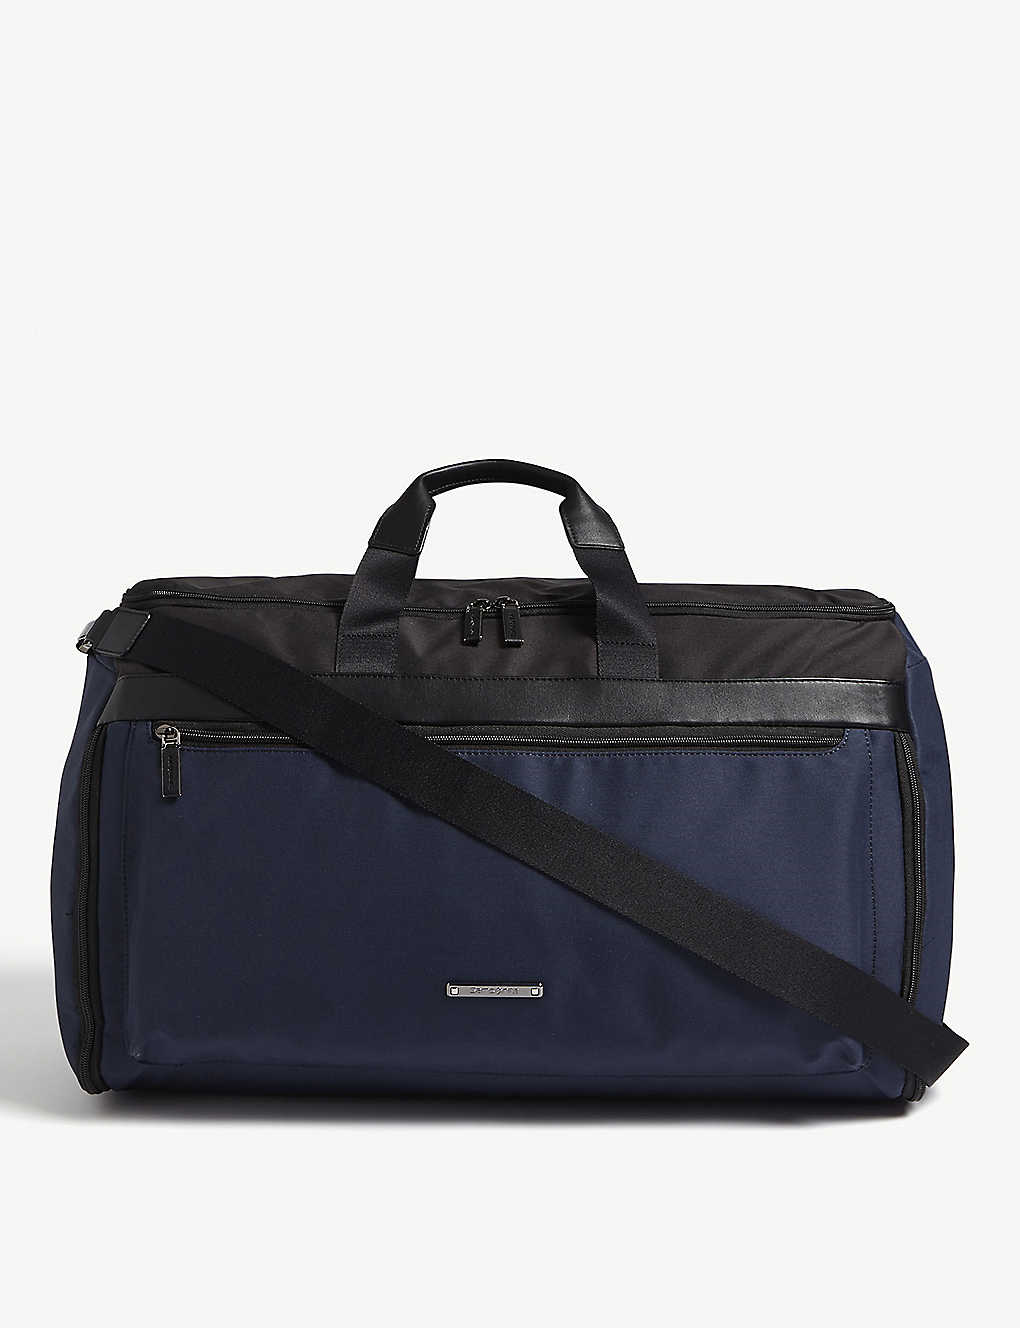 SAMSONITE: Asterism duffle bag